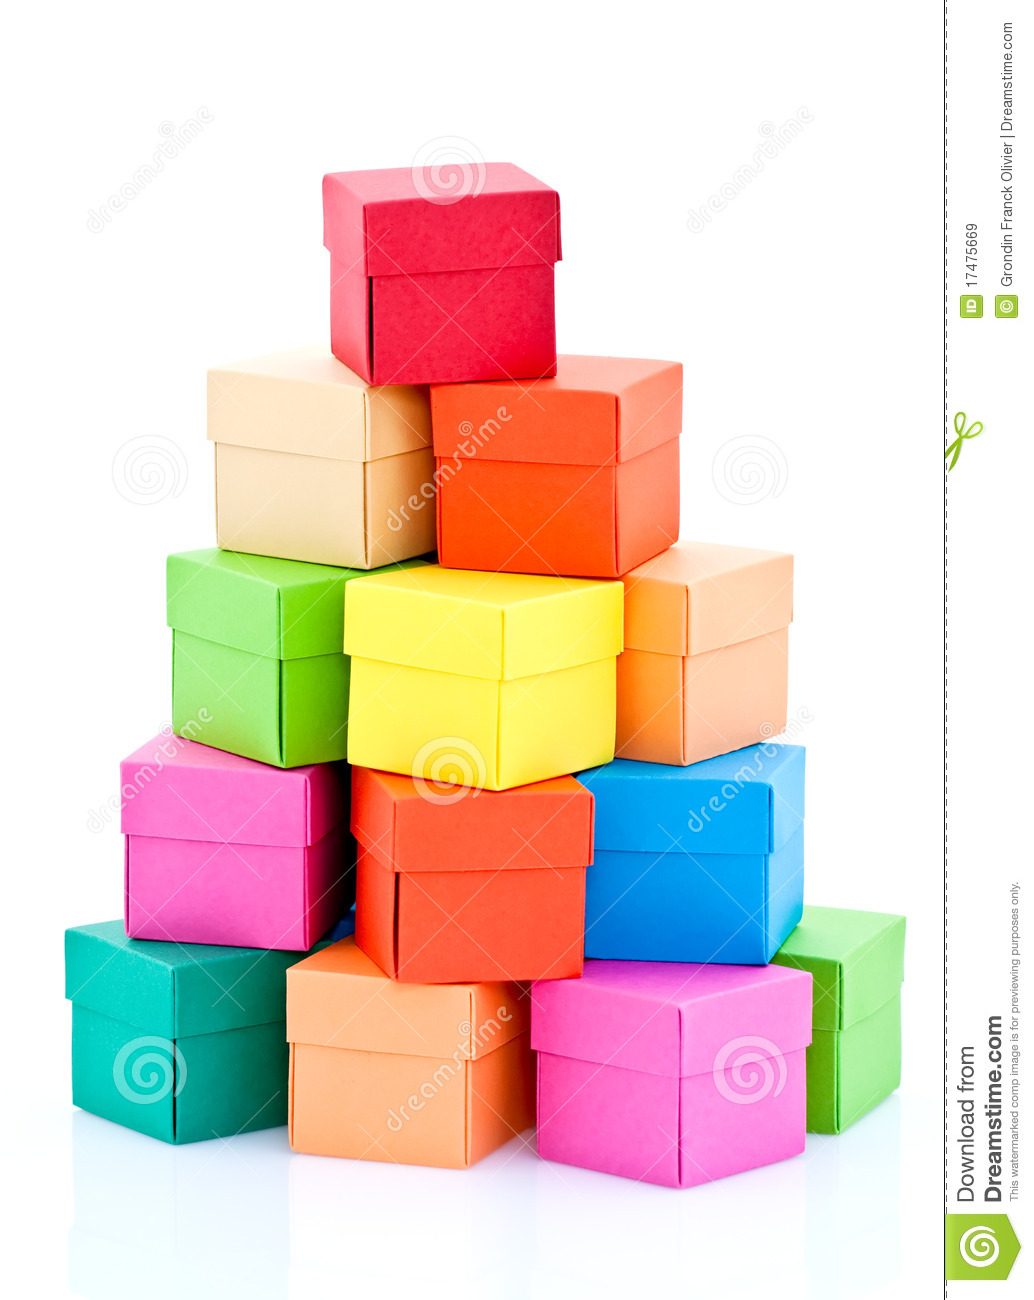 Pile Of Colored Boxes Royalty Free Stock Images   Image  17475669